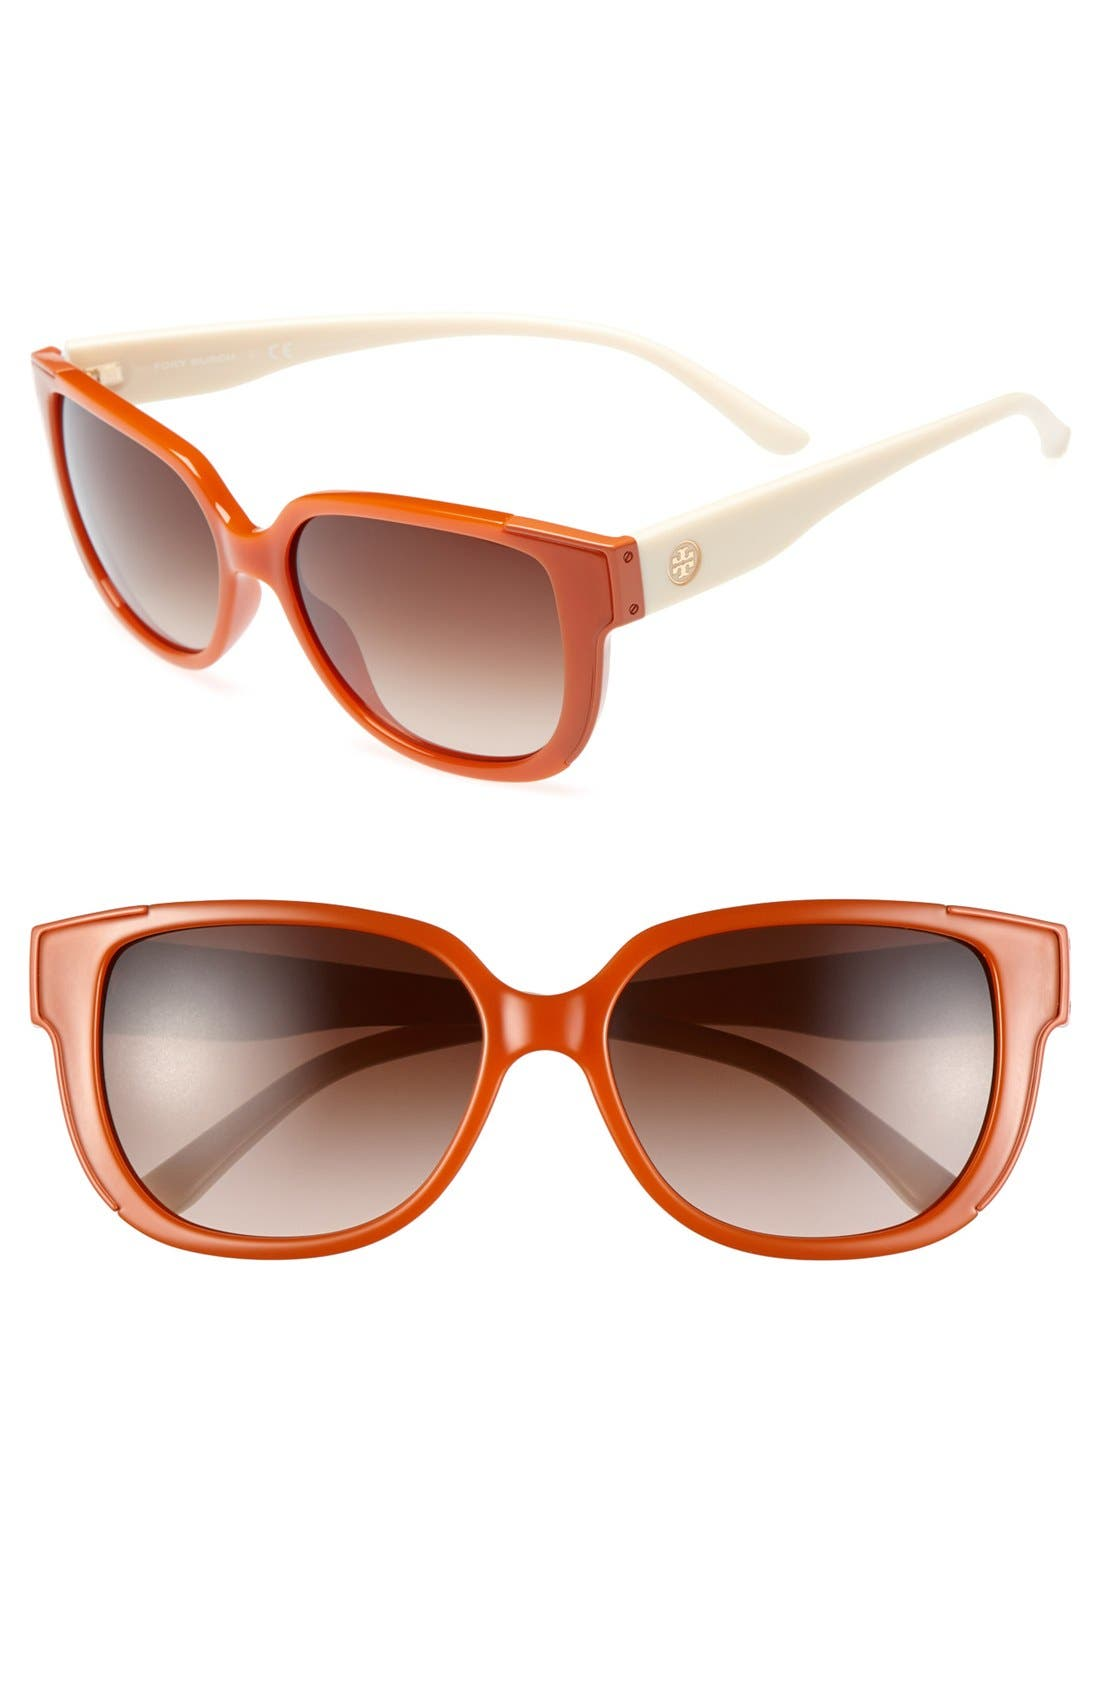 Alternate Image 1 Selected - Tory Burch 57mm Square Logo Sunglasses